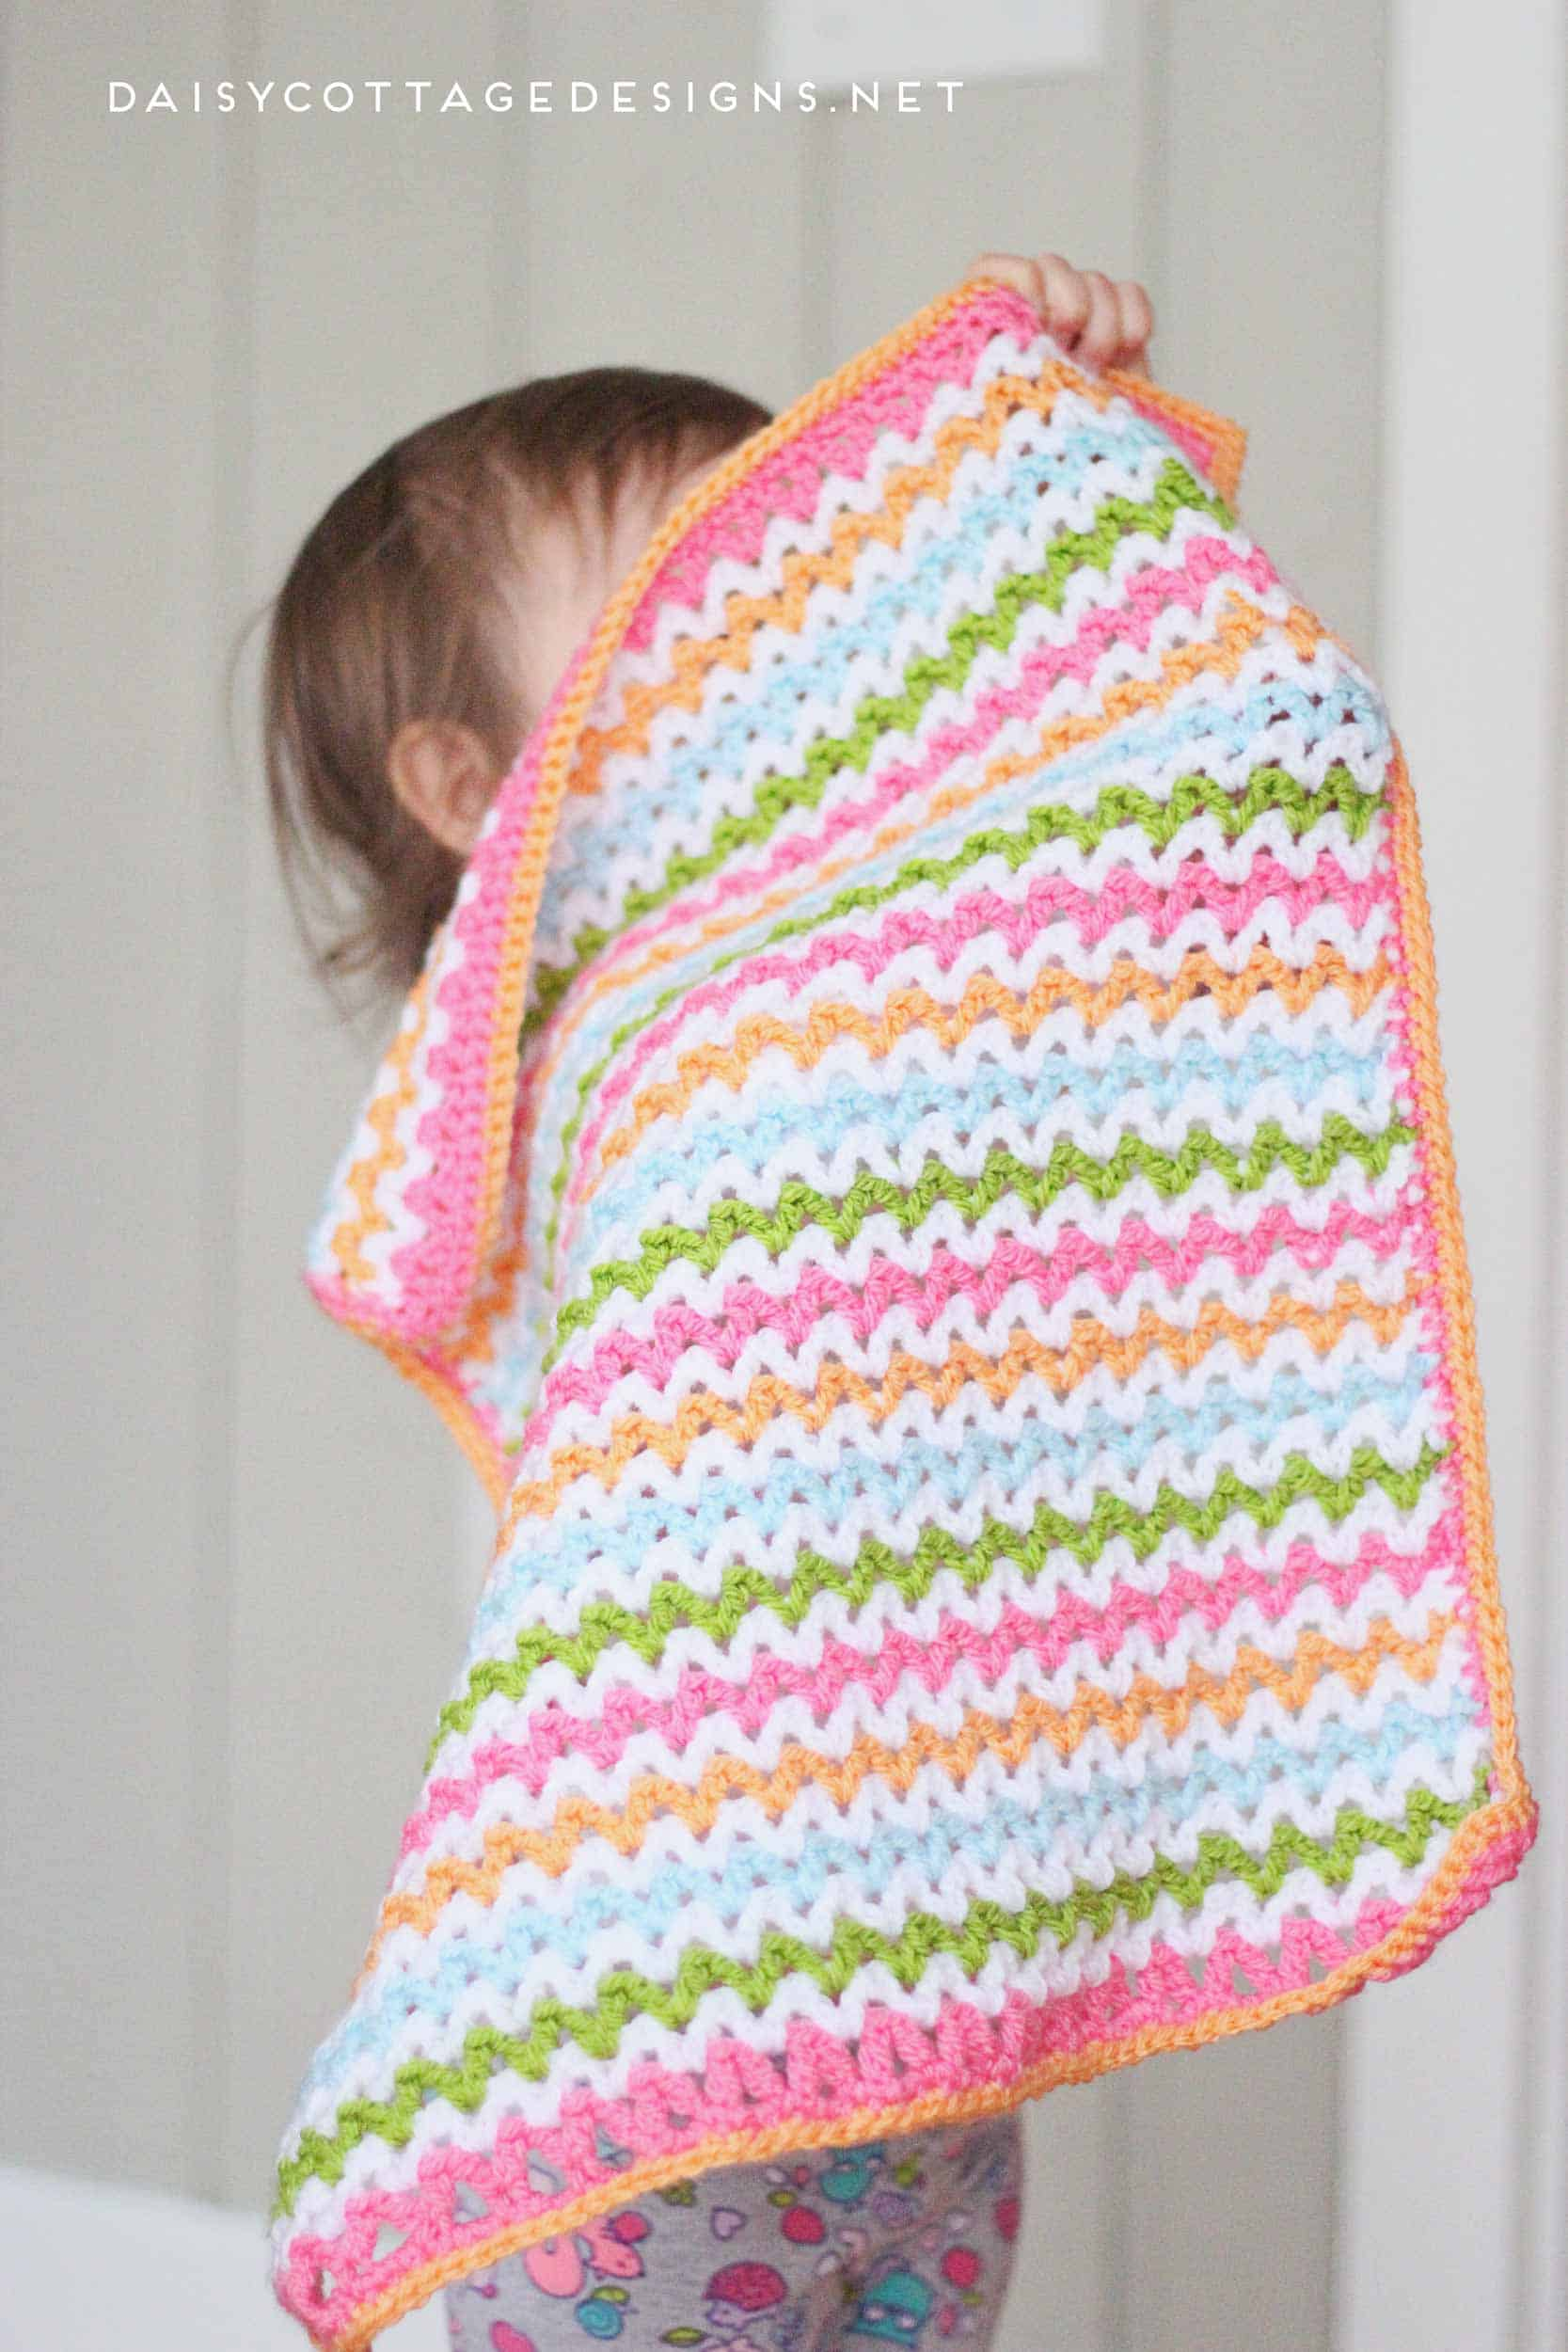 Pretty V Stitch Blanket Crochet Pattern Daisy Cottage Designs